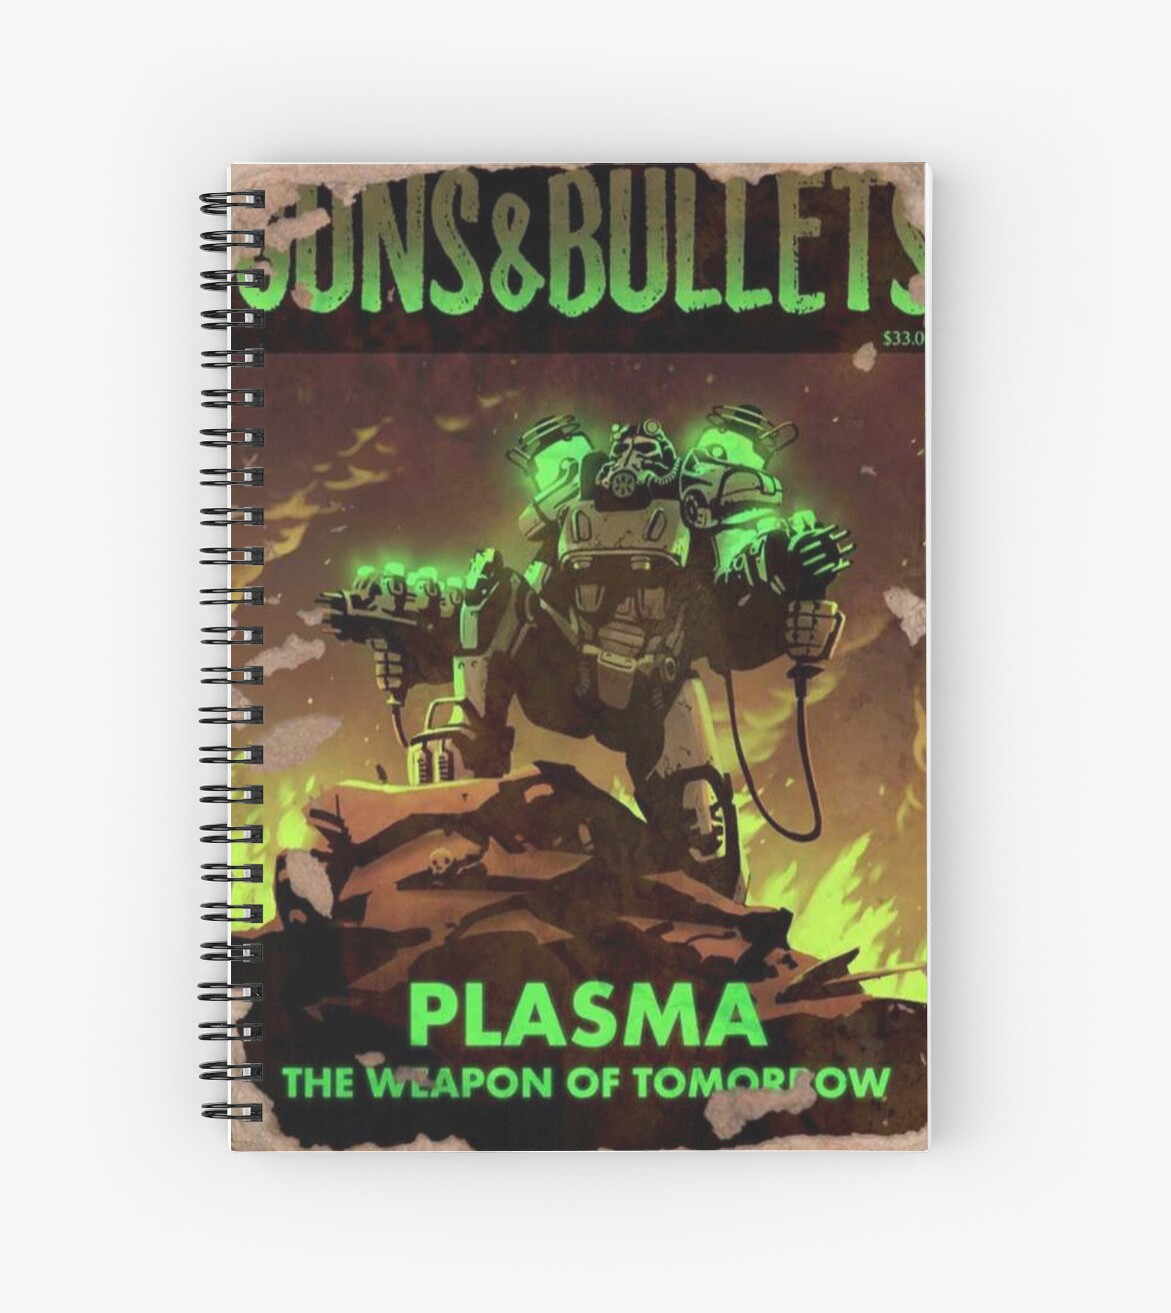 fallout 4 guns and bullets plasma weapons of tomorrow poster